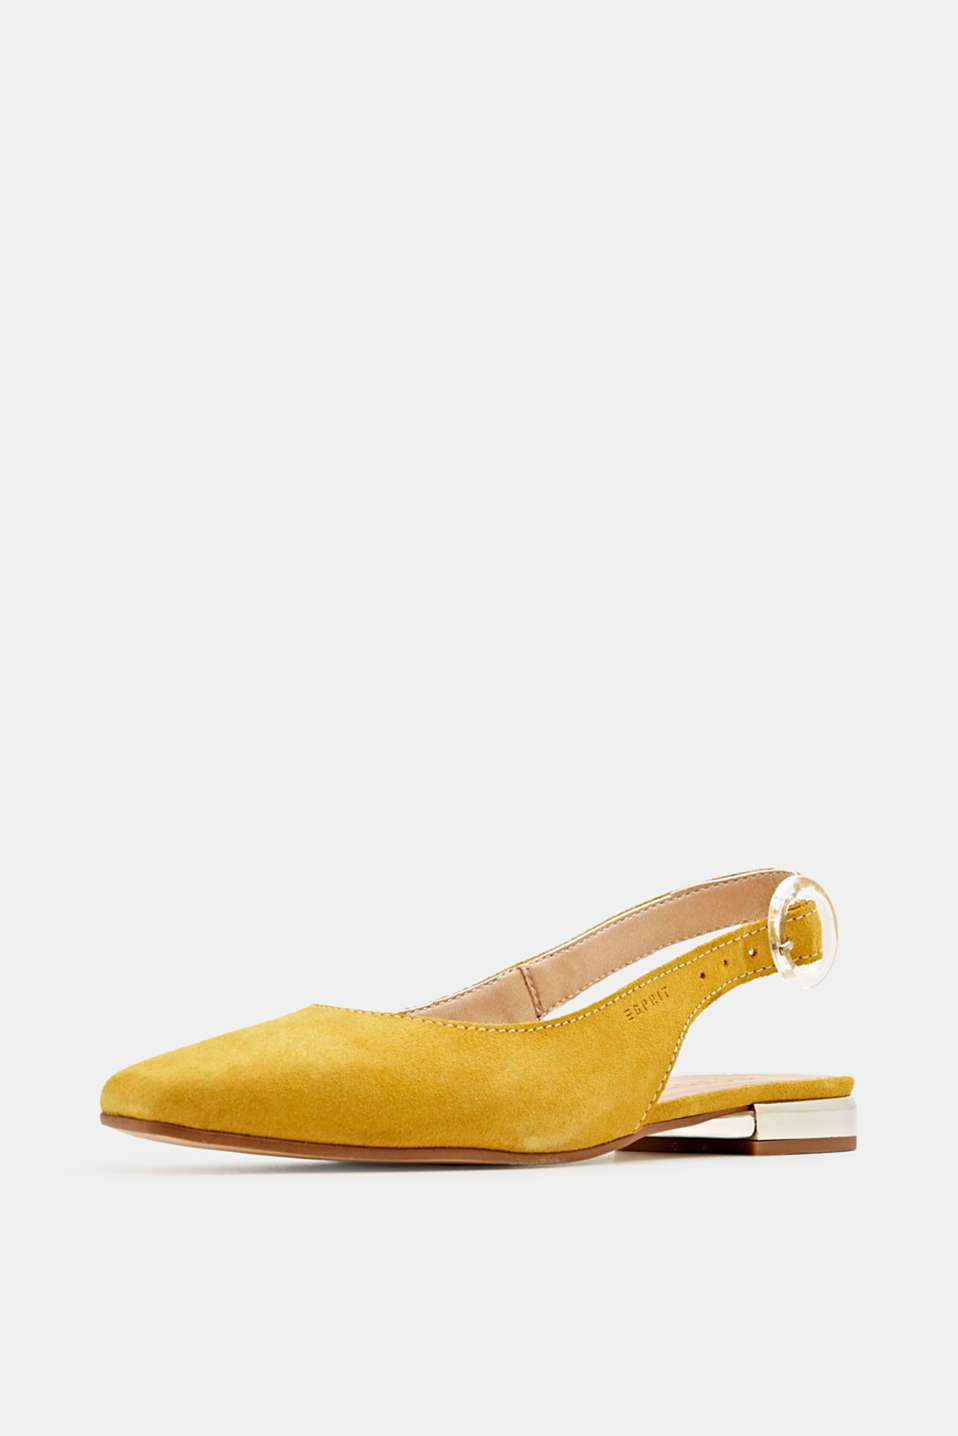 Sling back suede ballerinas, YELLOW, detail image number 2